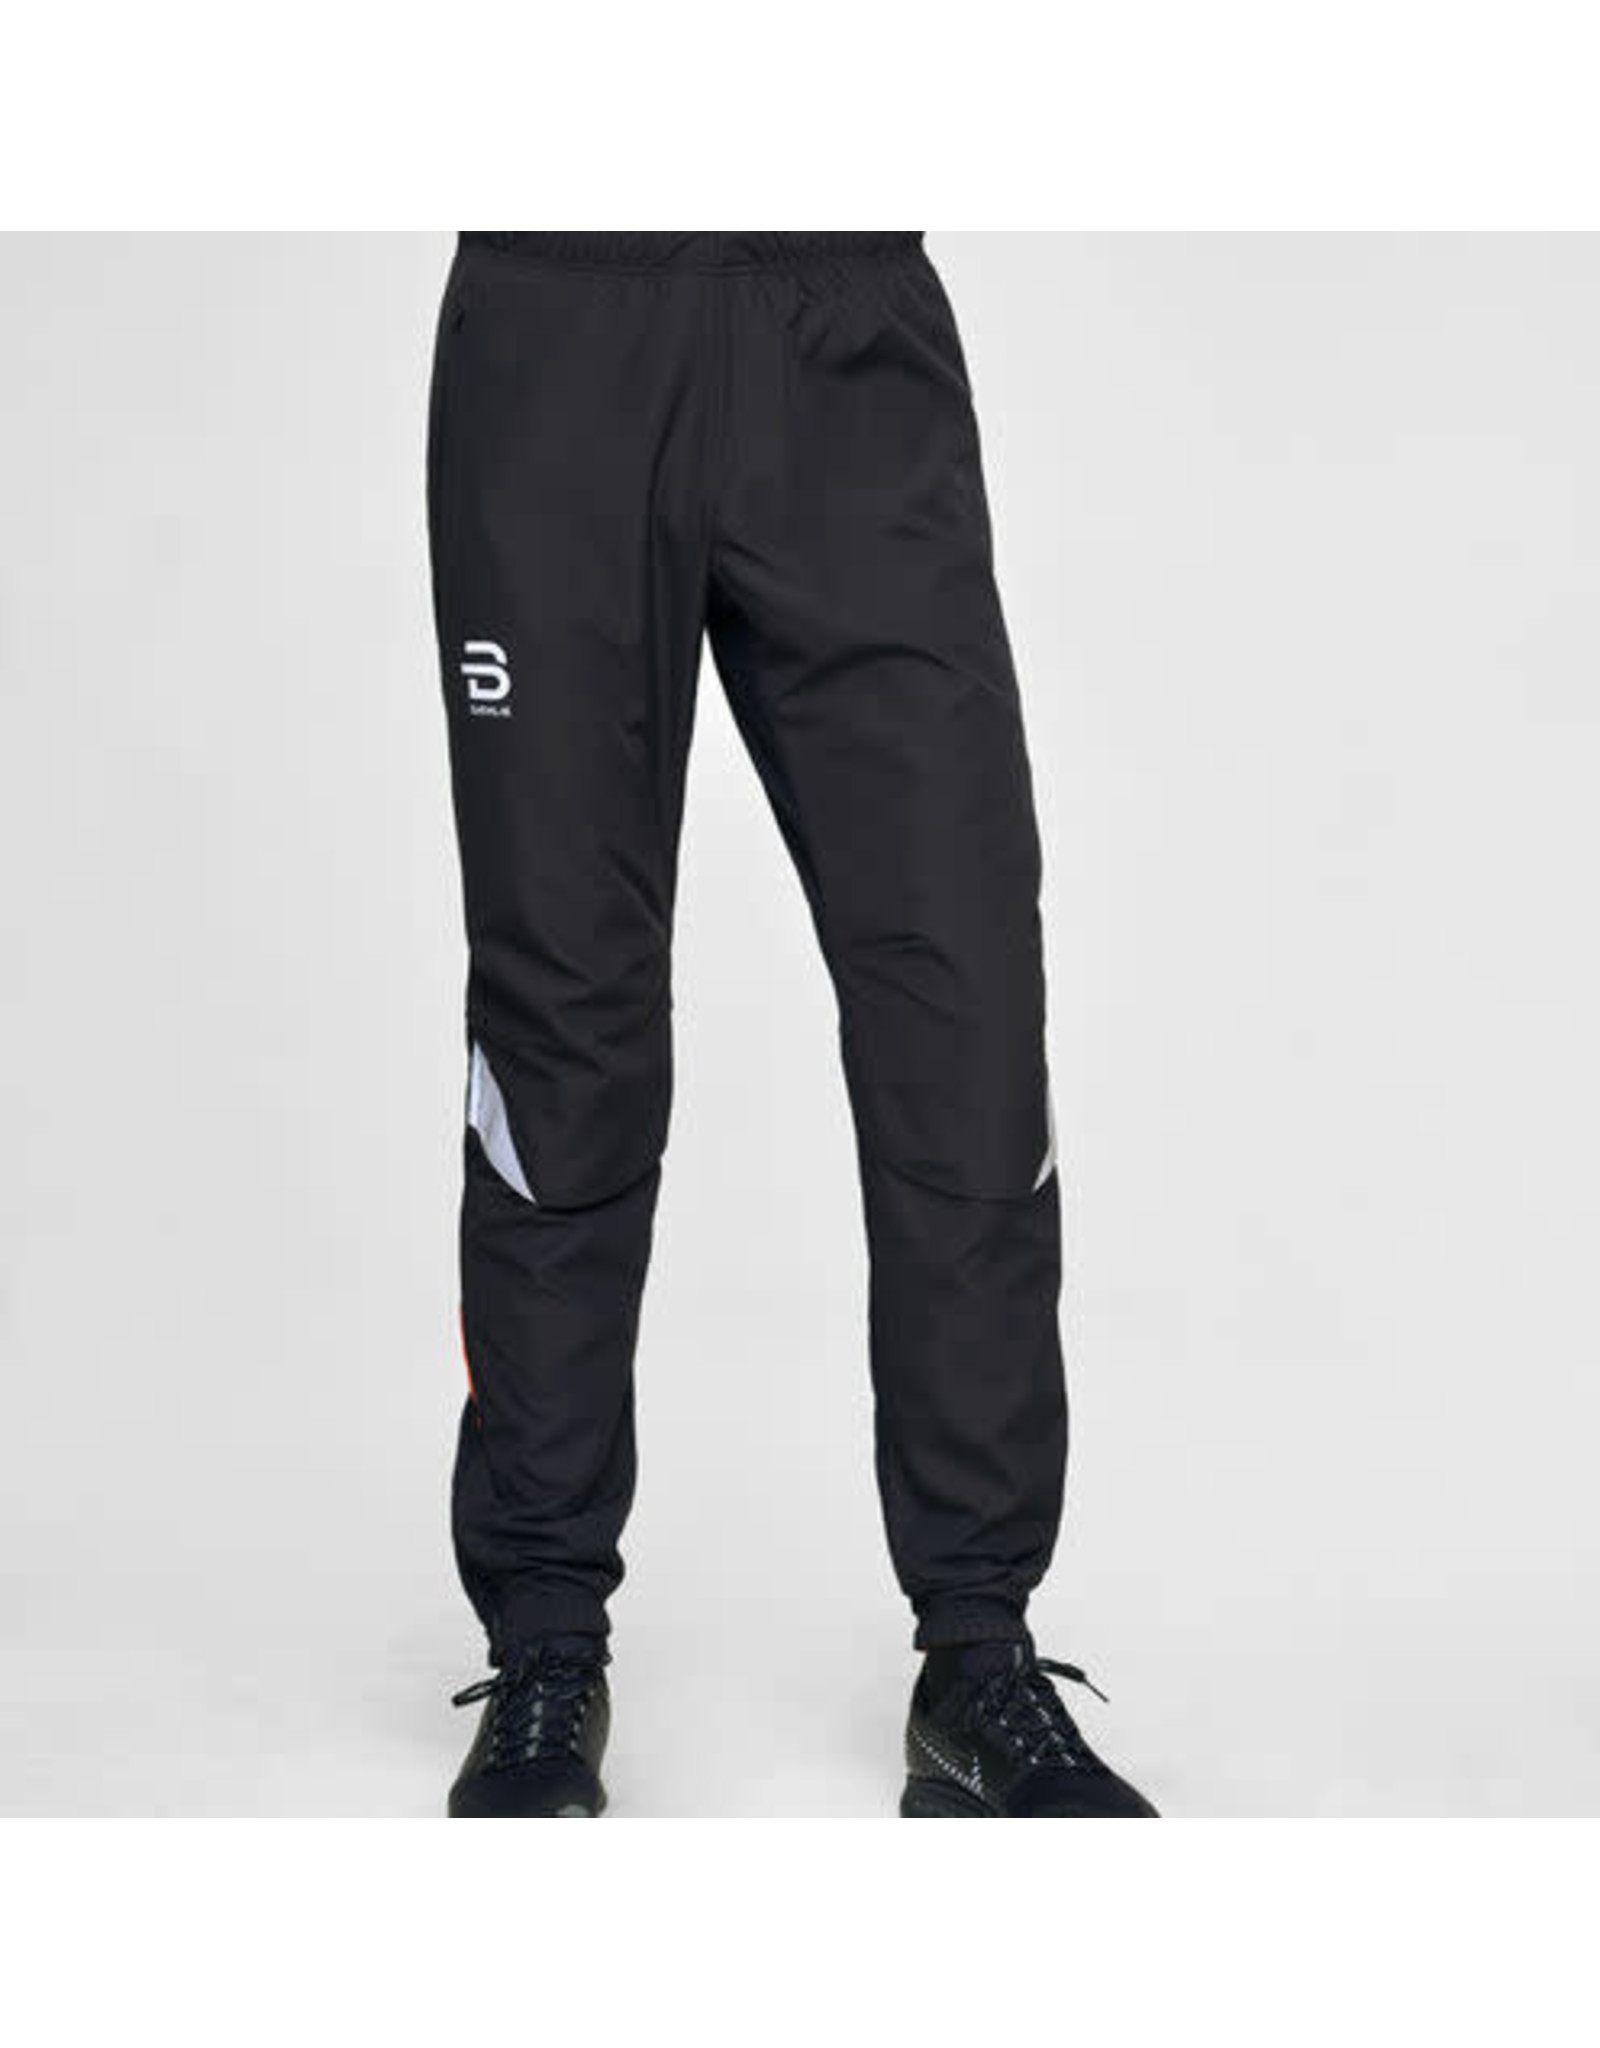 Bjorn Daehlie Bjorn Daehlie Pants Winner 3.0 Men's